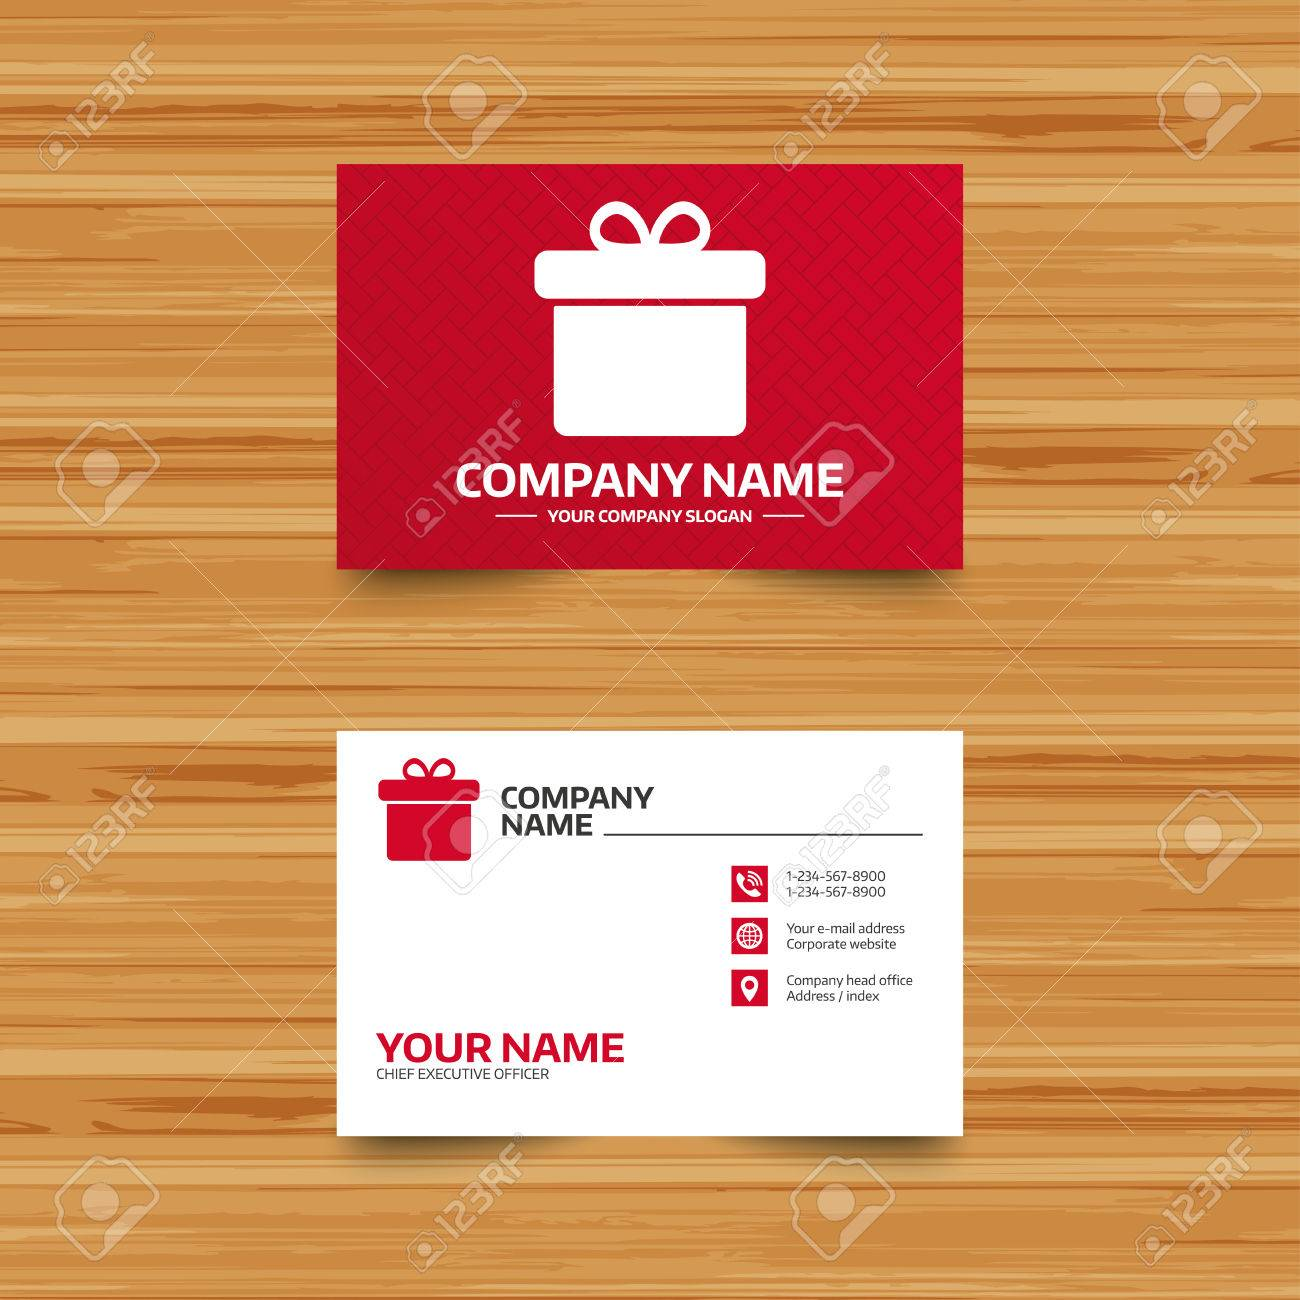 Business card template gift box sign icon present symbol phone business card template gift box sign icon present symbol phone globe and magicingreecefo Images